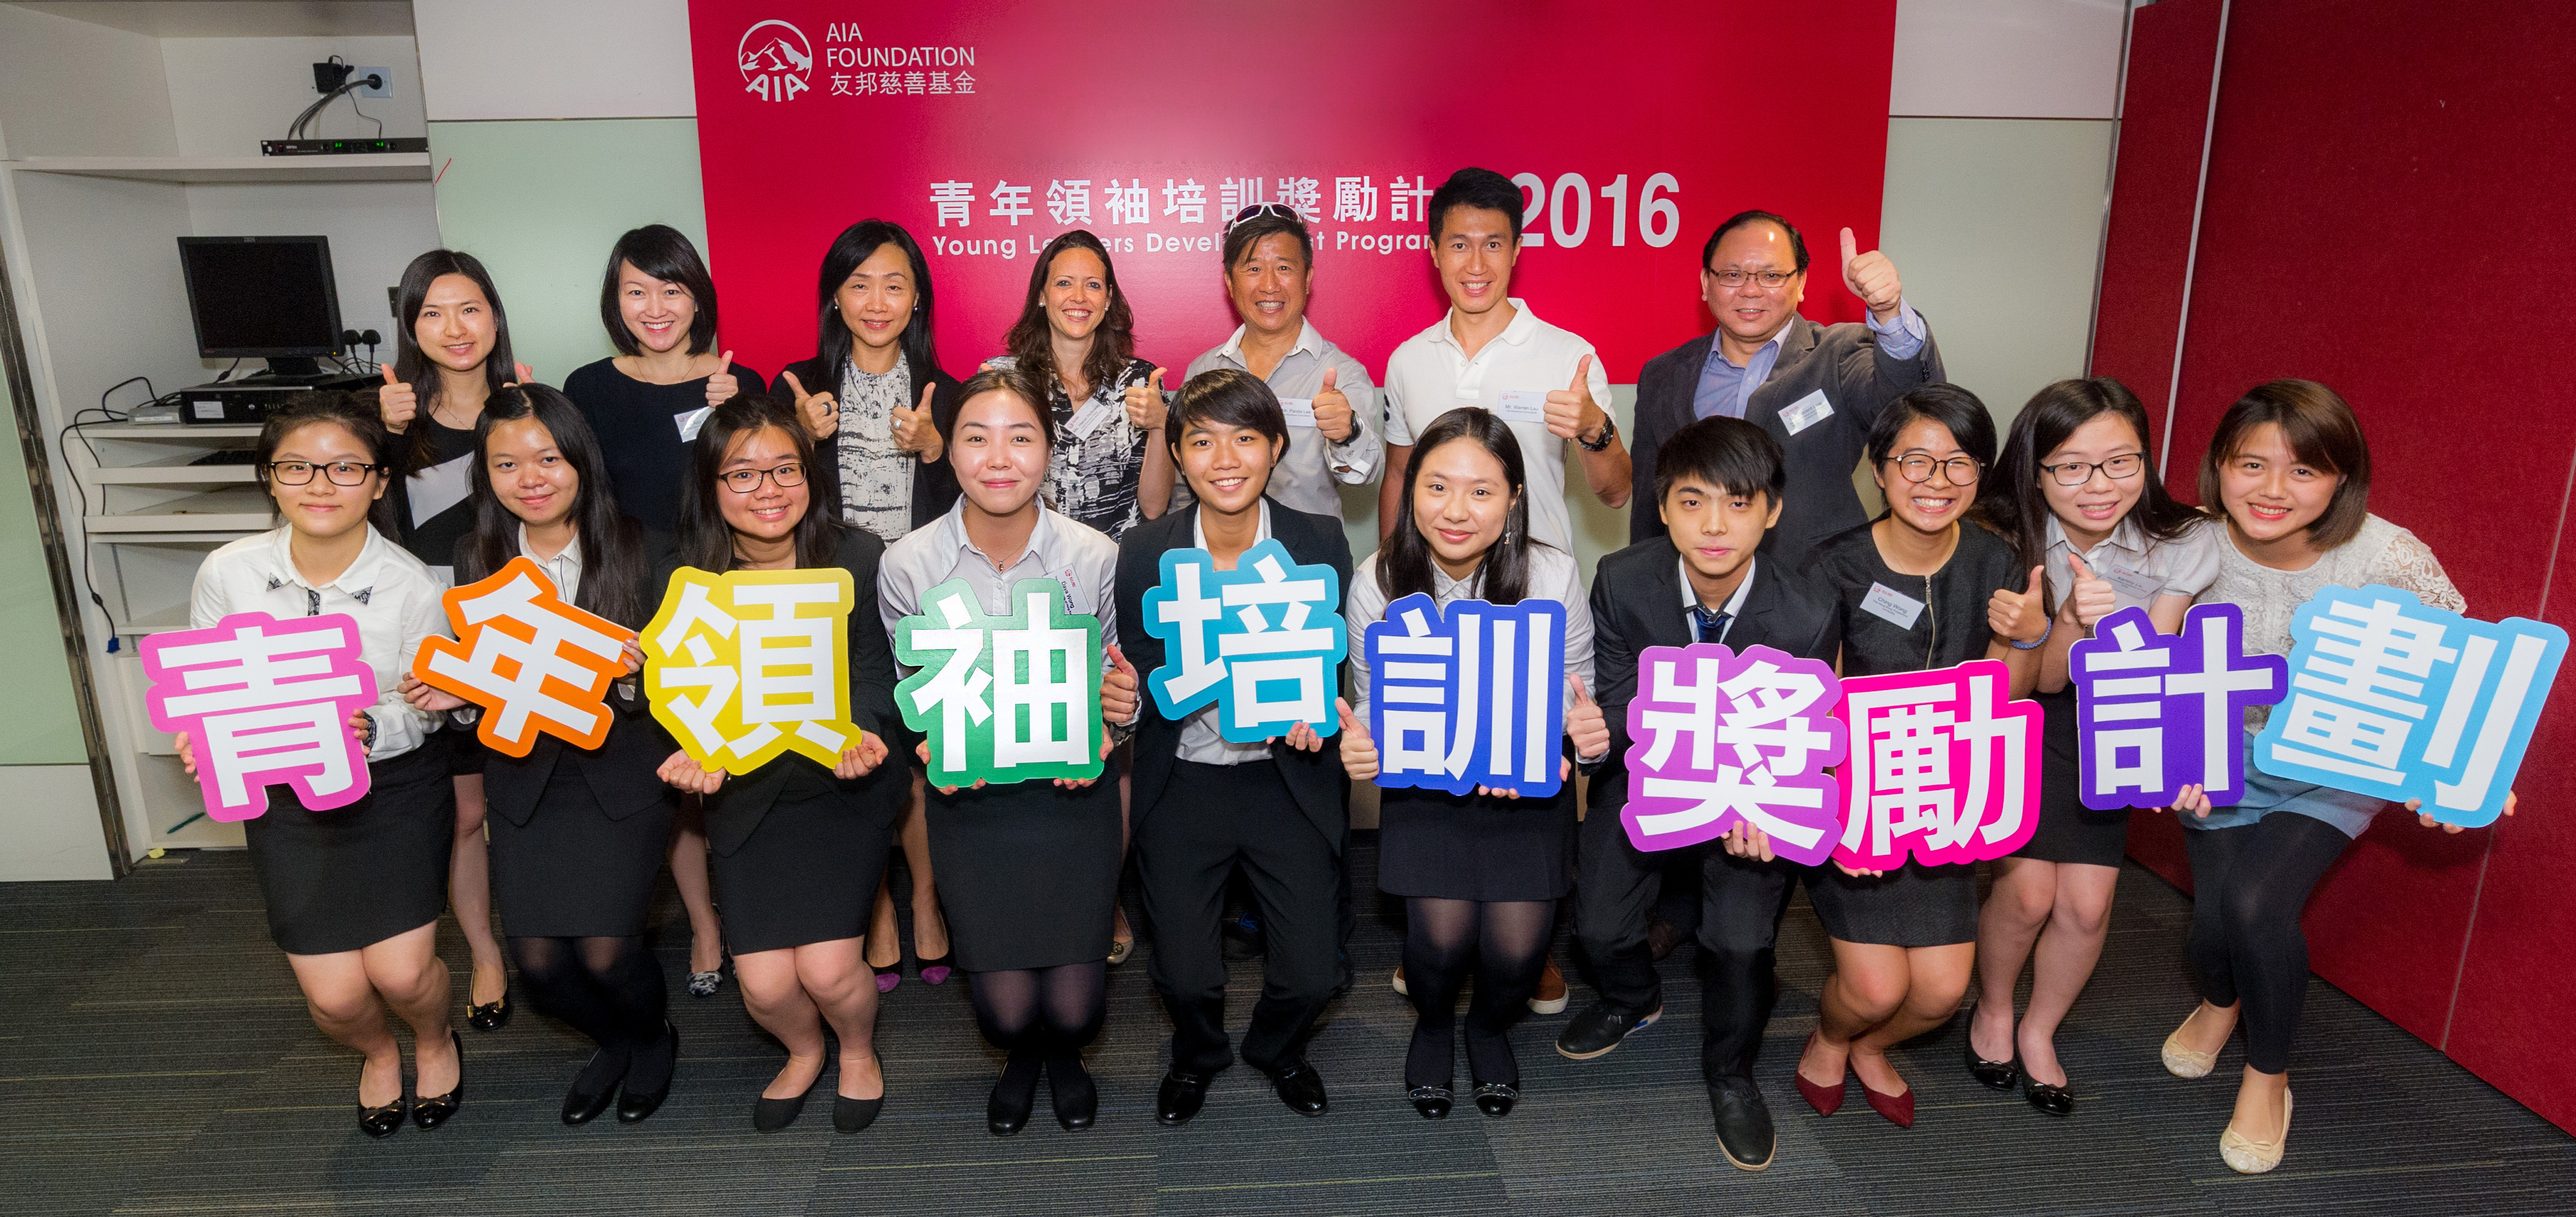 Group photo of AIA Hong Kong representatives, guests and students from the 2016 AIA YLDP.